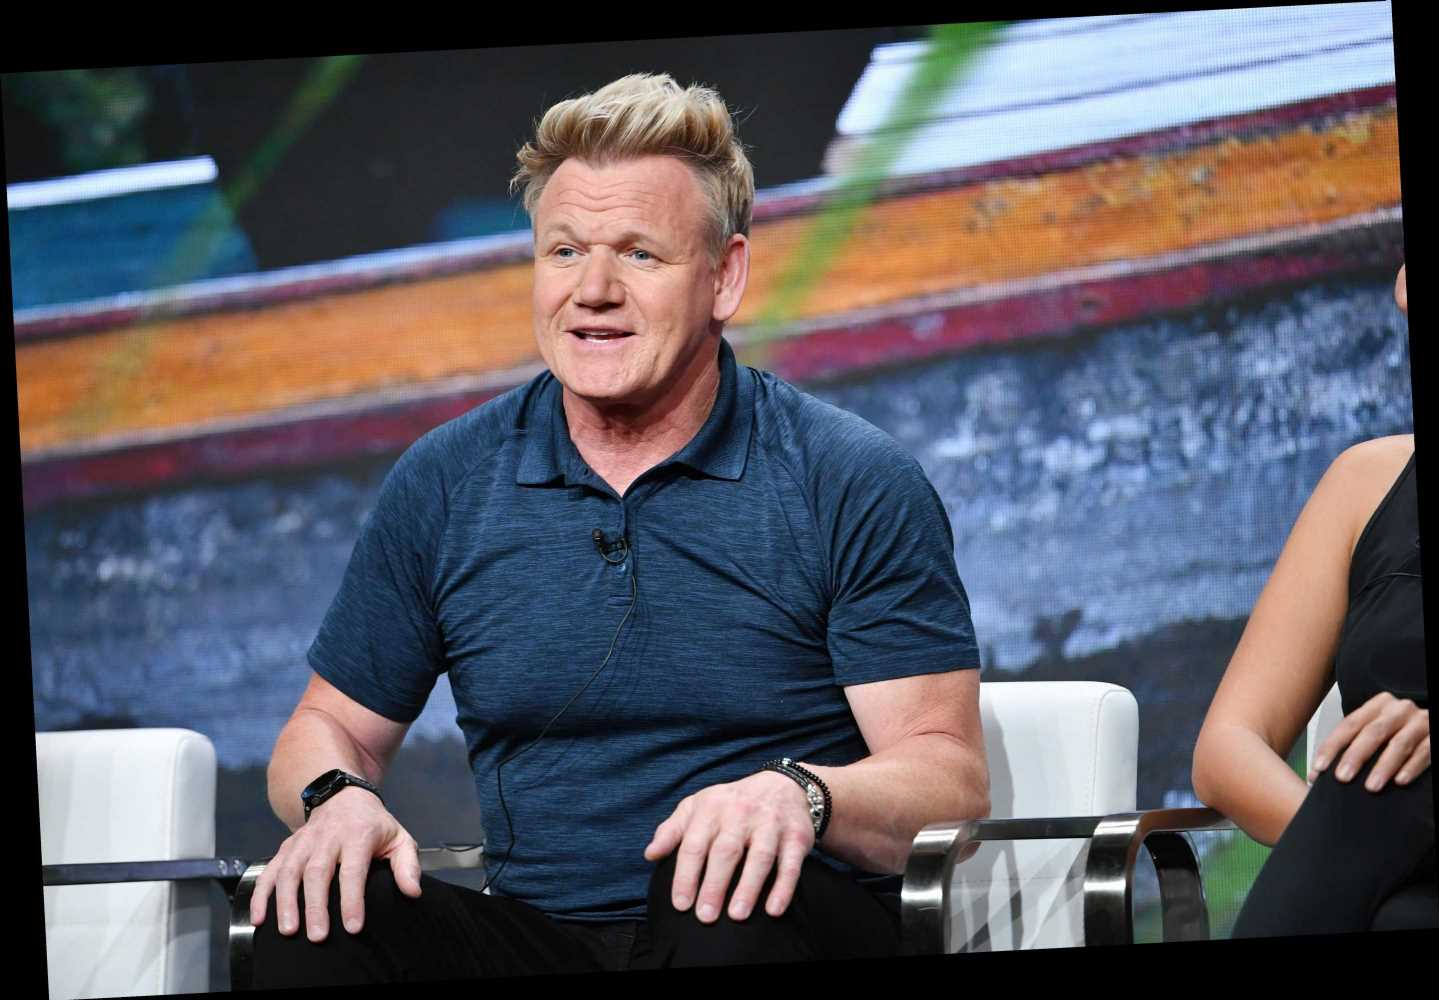 Gordon Ramsay breaks silence to promote YouTube series after laying off staff